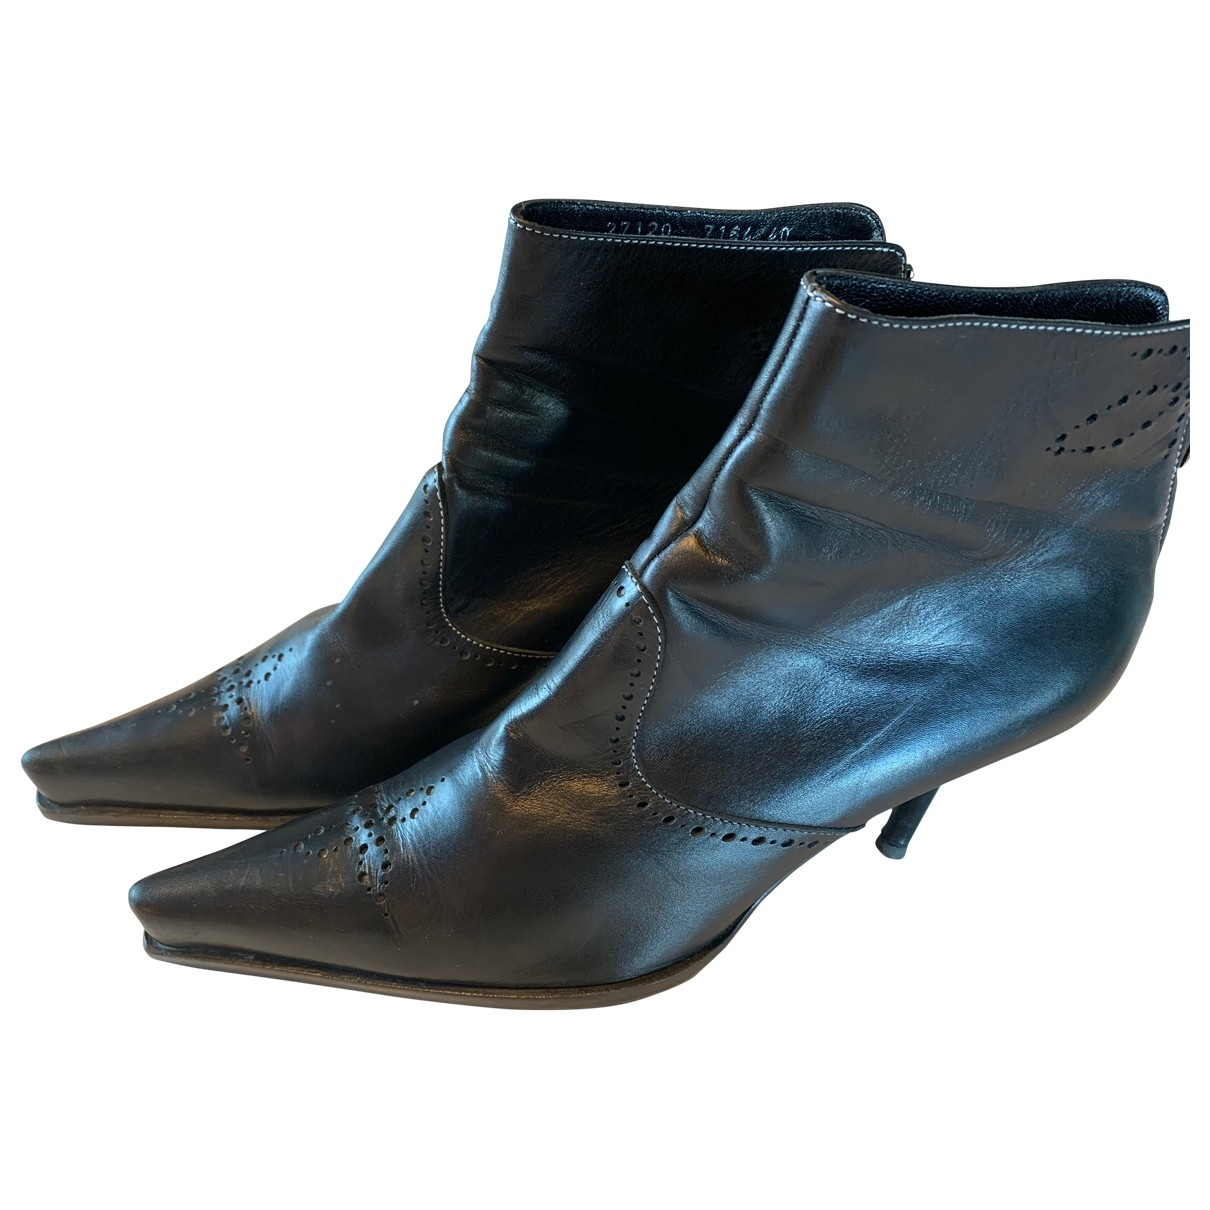 Sergio Rossi \N Black Leather Ankle boots for Women 40 EU